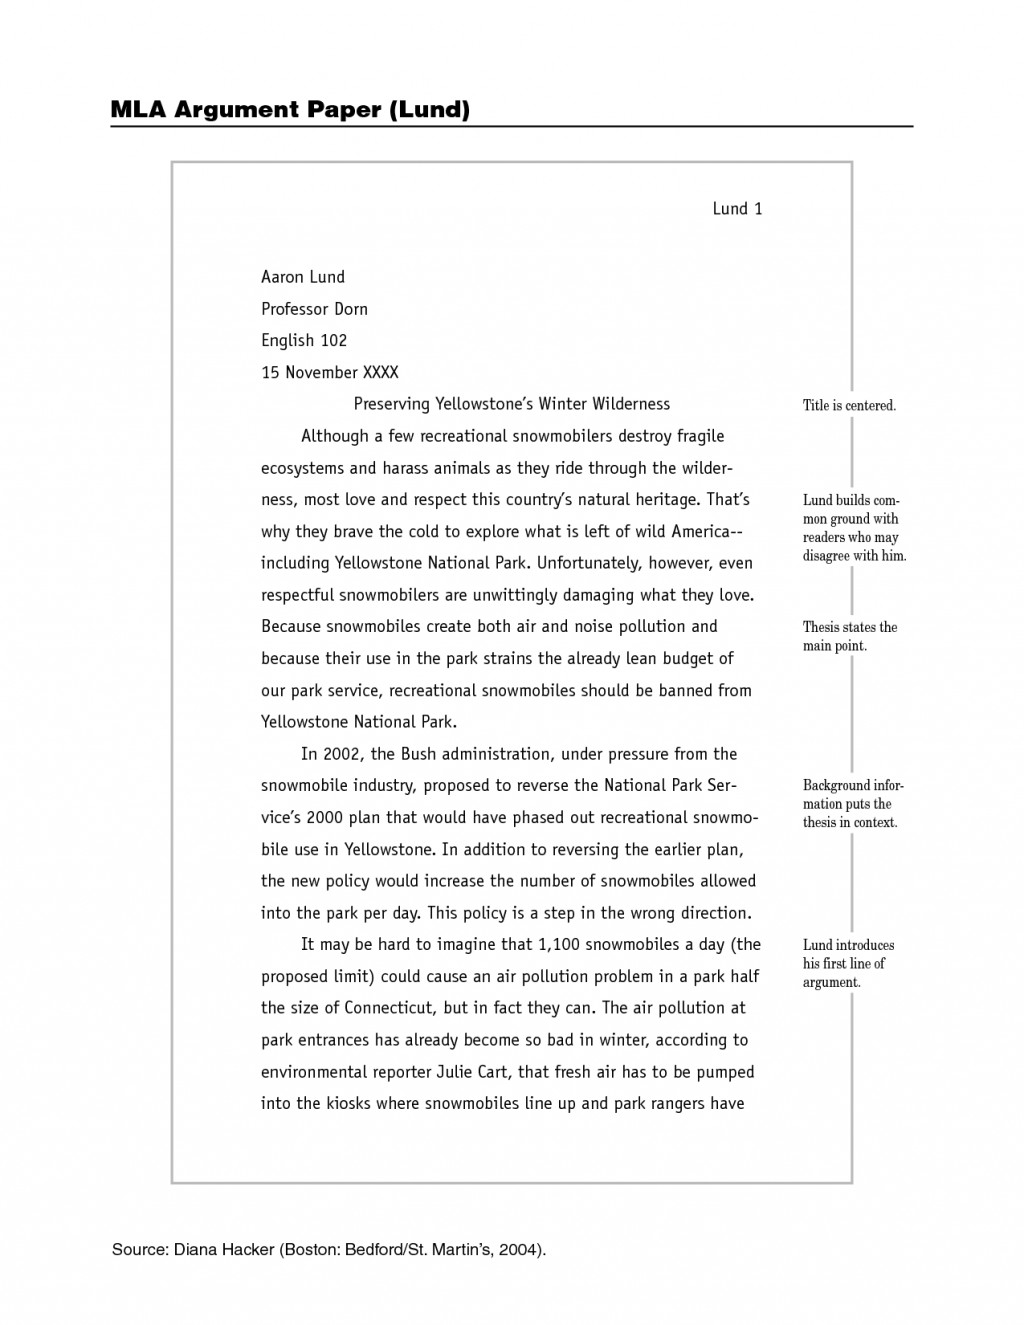 008 Essay Example Mla Format For Paper 309602 Remarkable Citation Title Page Large